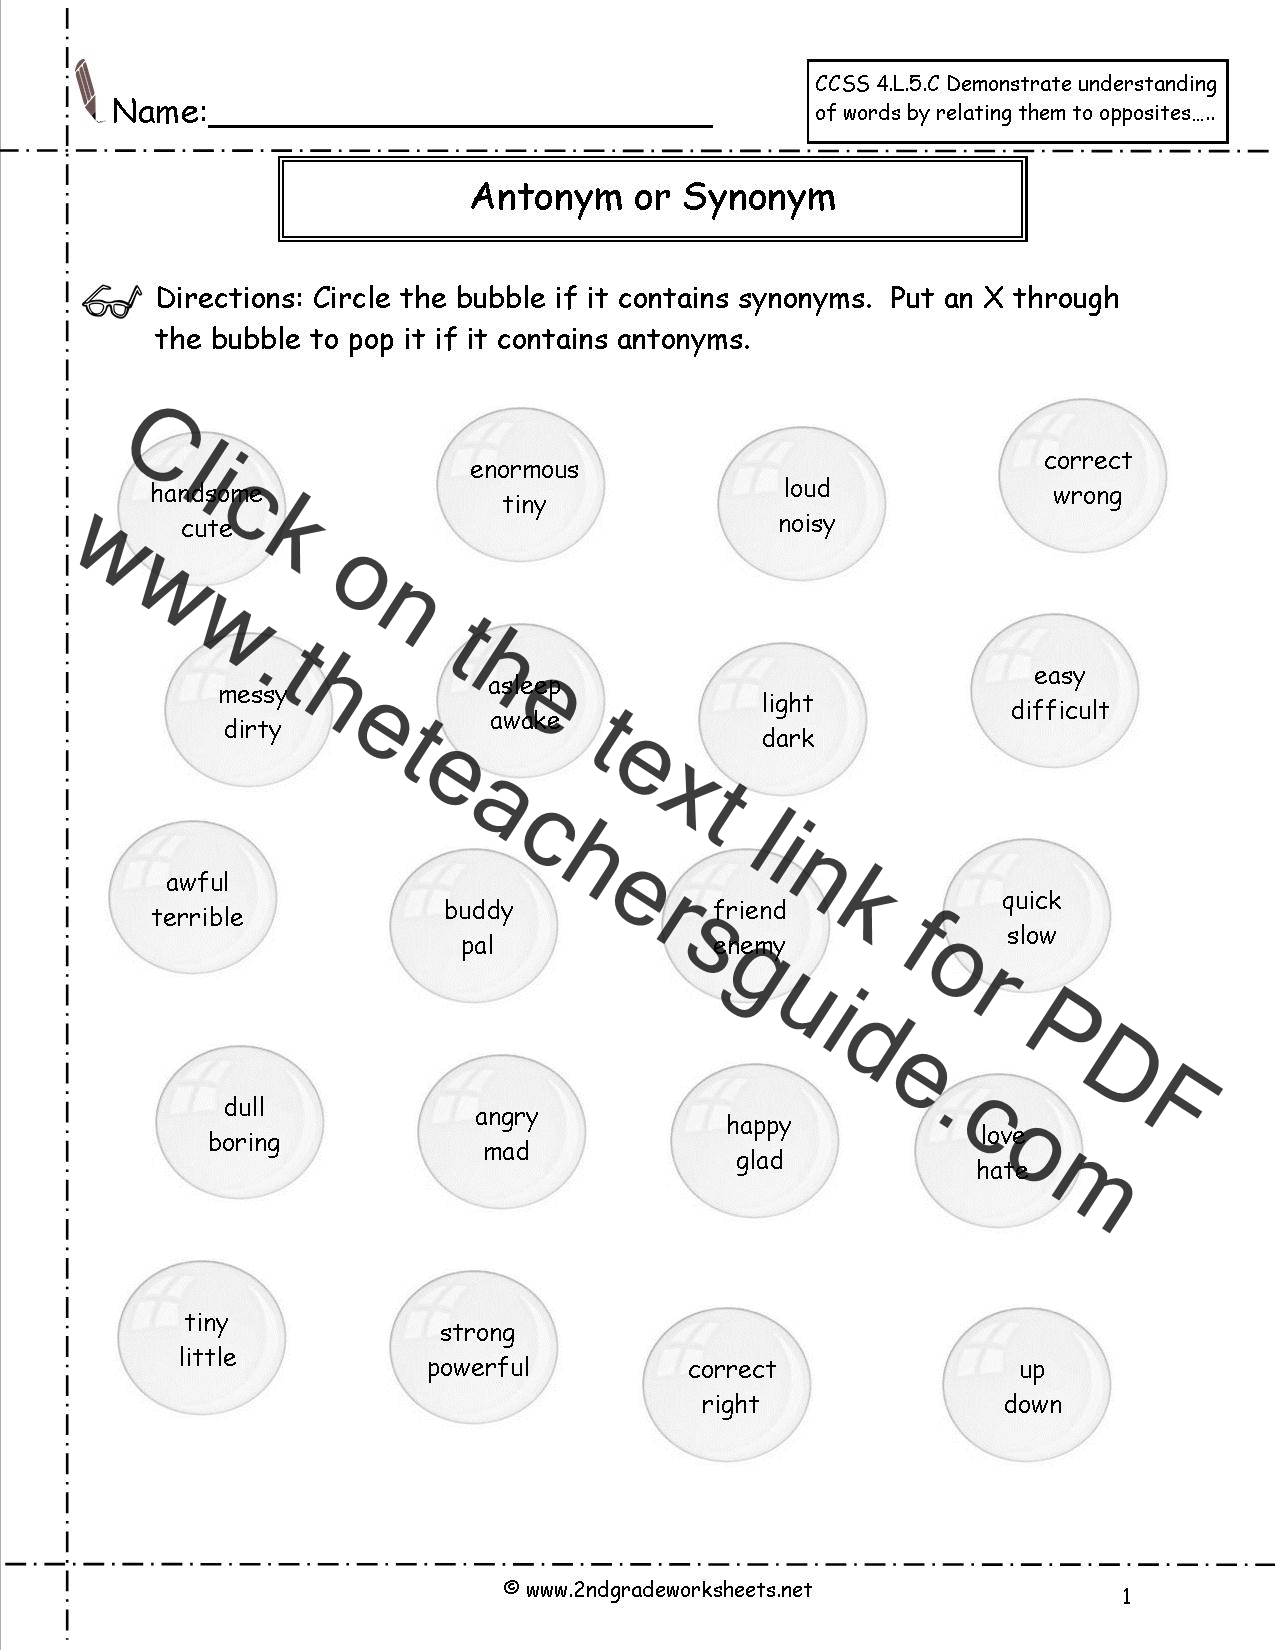 Worksheets Synonym And Antonym Worksheets synonyms and antonyms worksheets worksheet